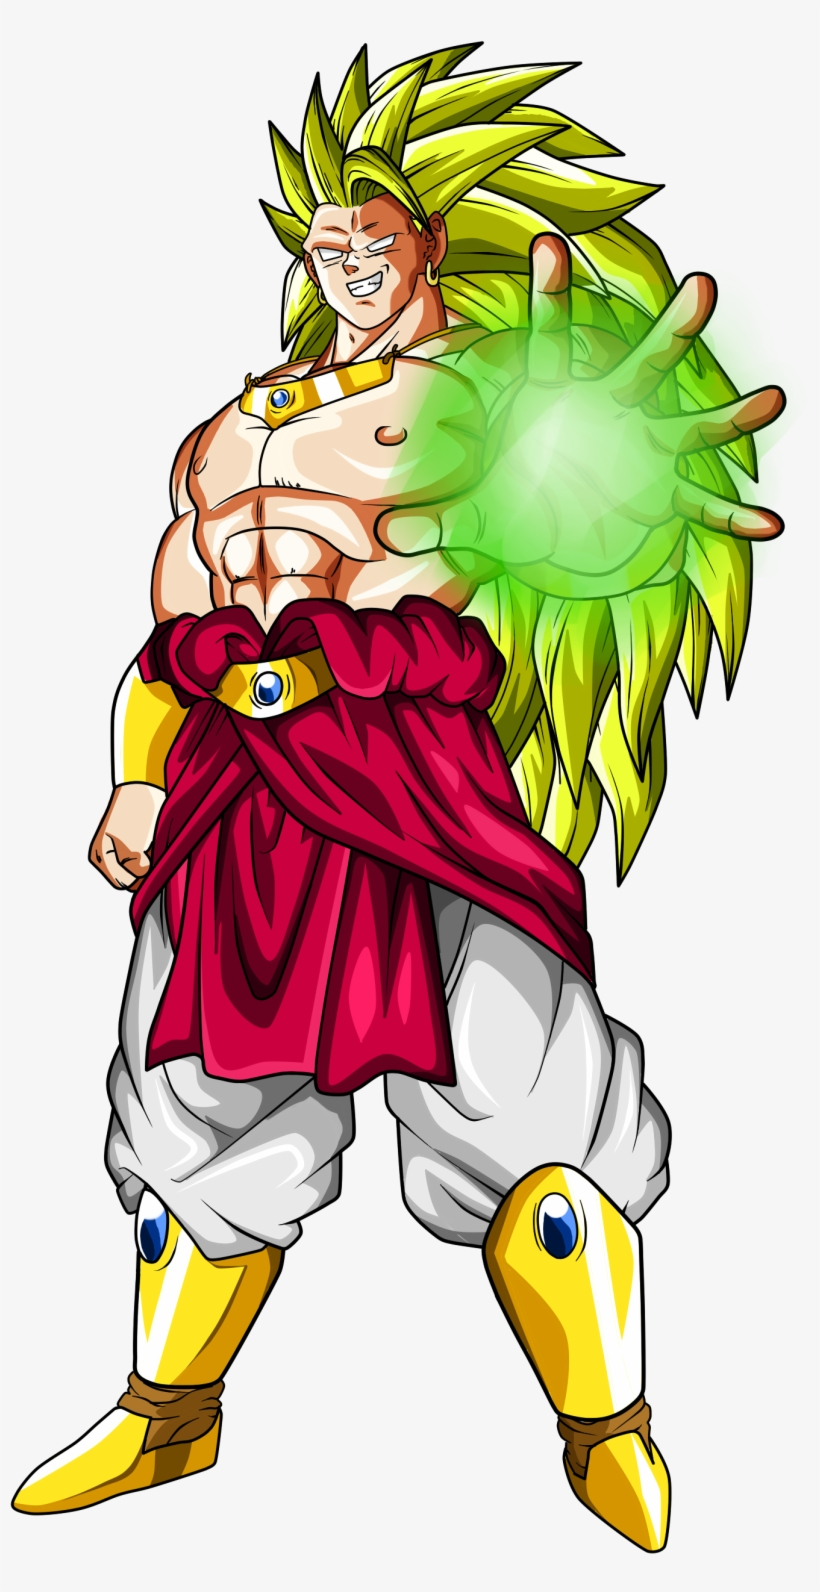 Pin By Zodom On Wallpapers In 2018 Dragon Ball Z Broly Png